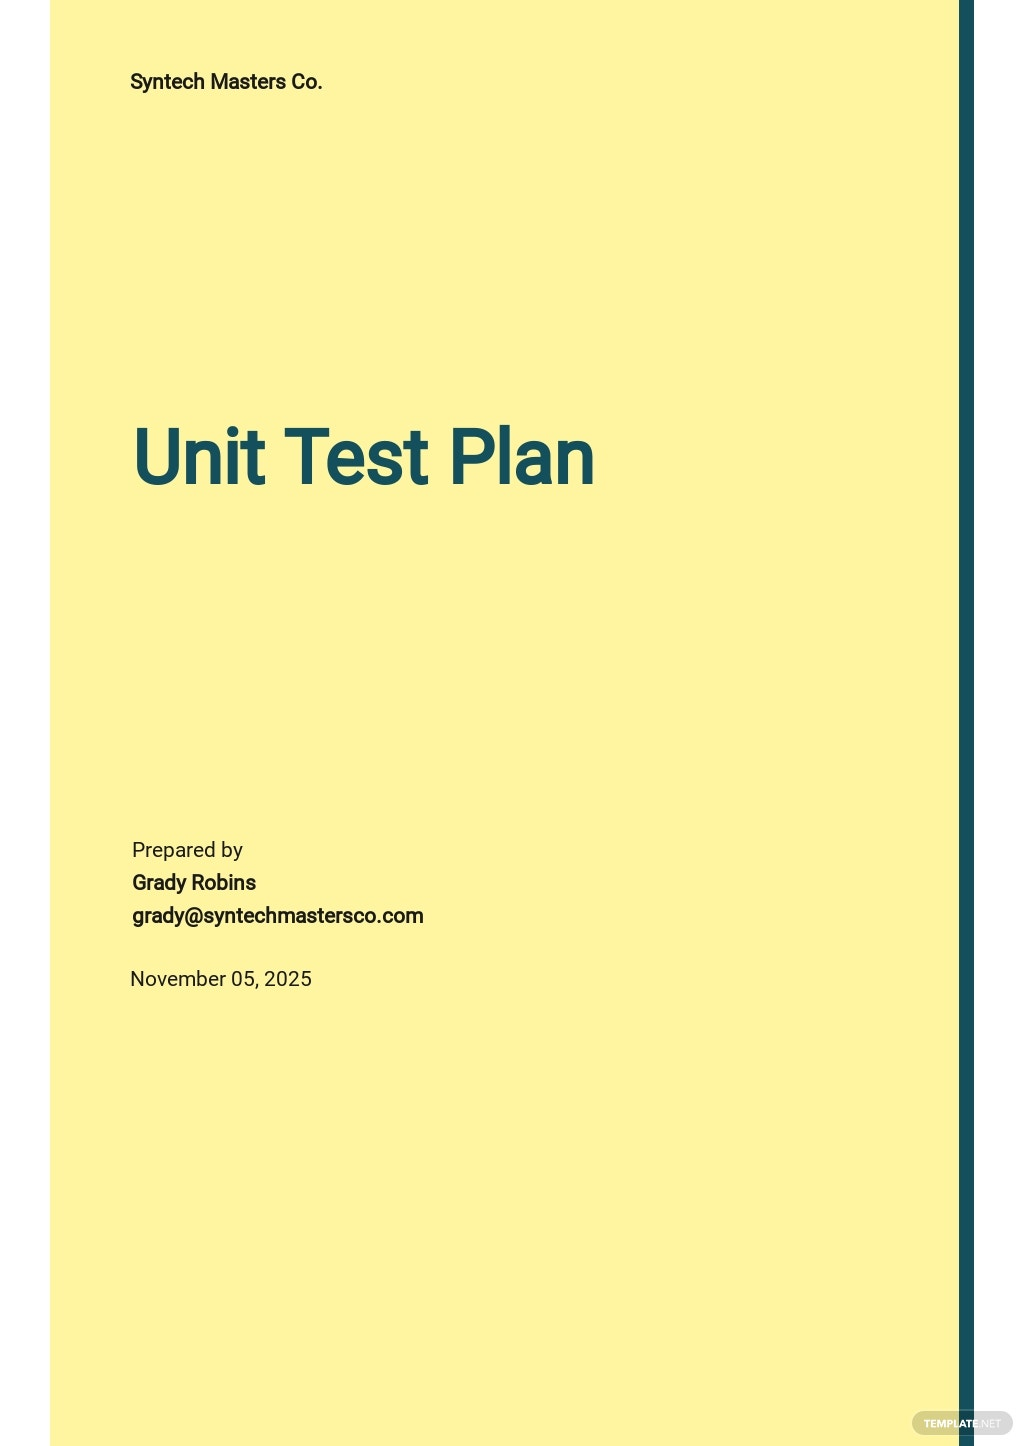 Unit Test Plan Template